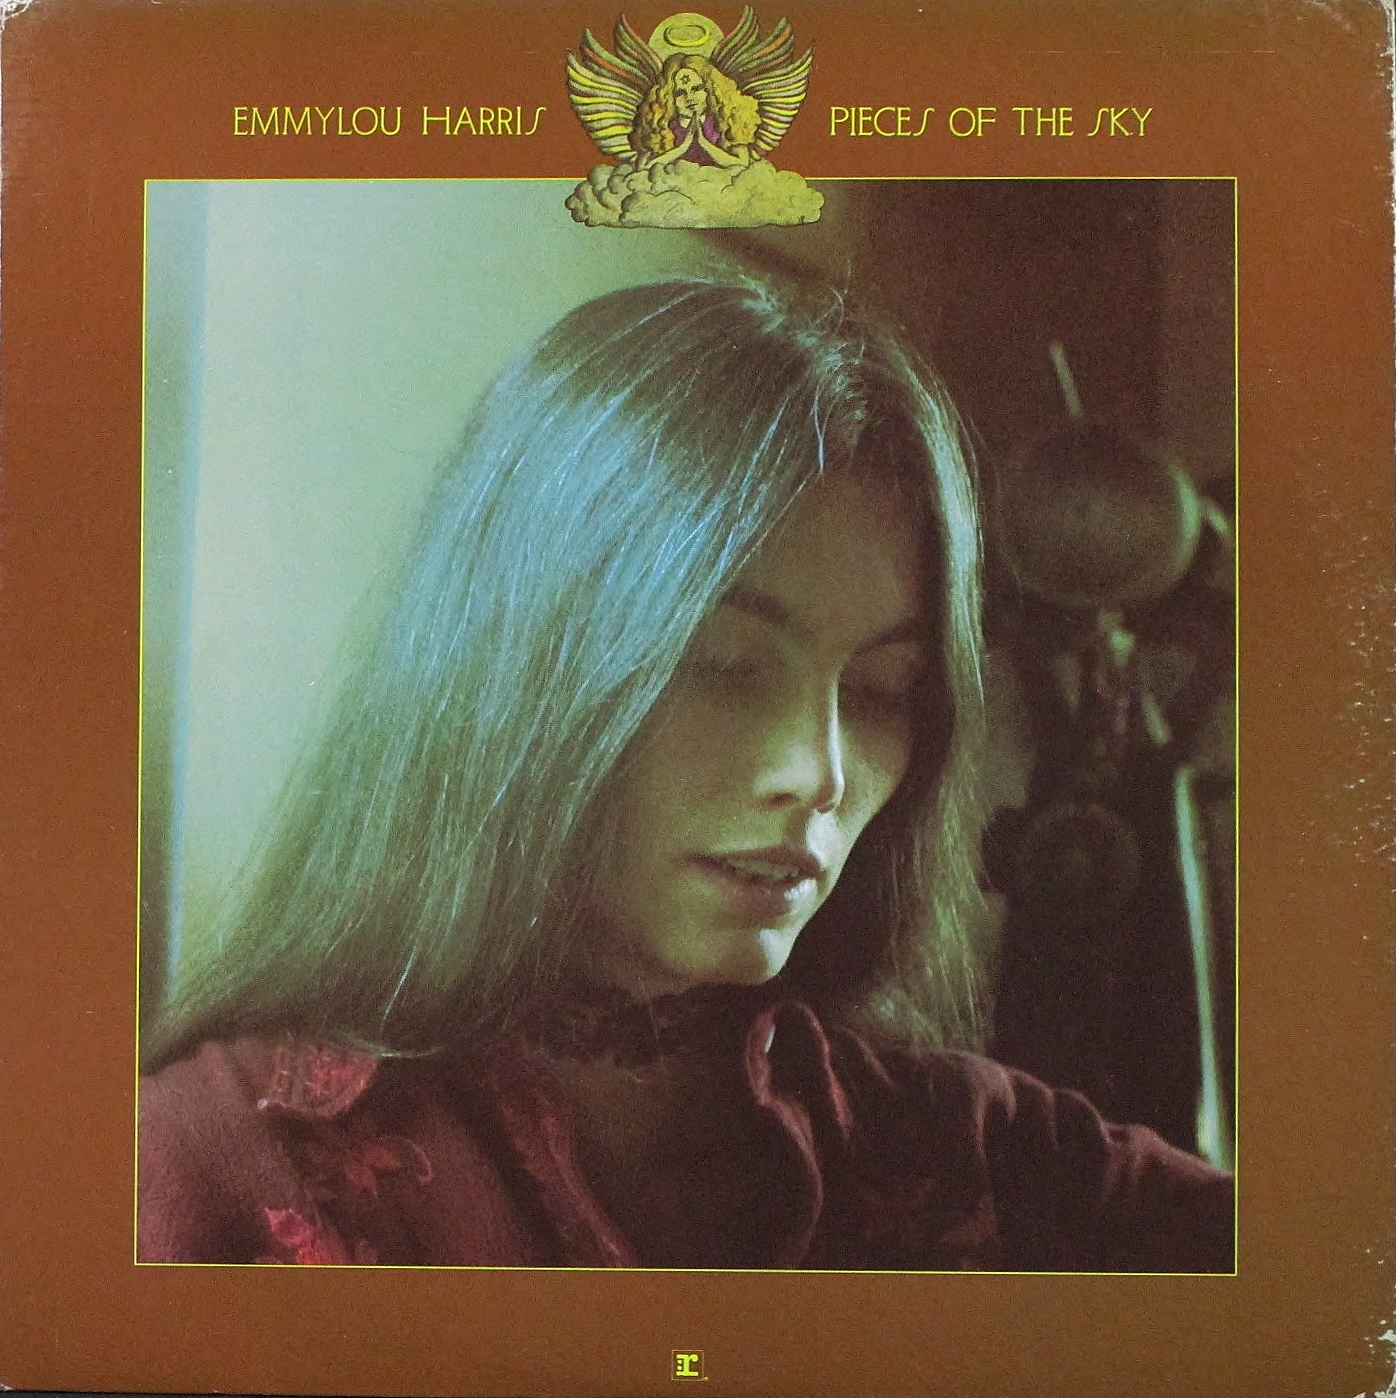 Emmylou Harris エミルー・ハリス / Pieces Of The Sky